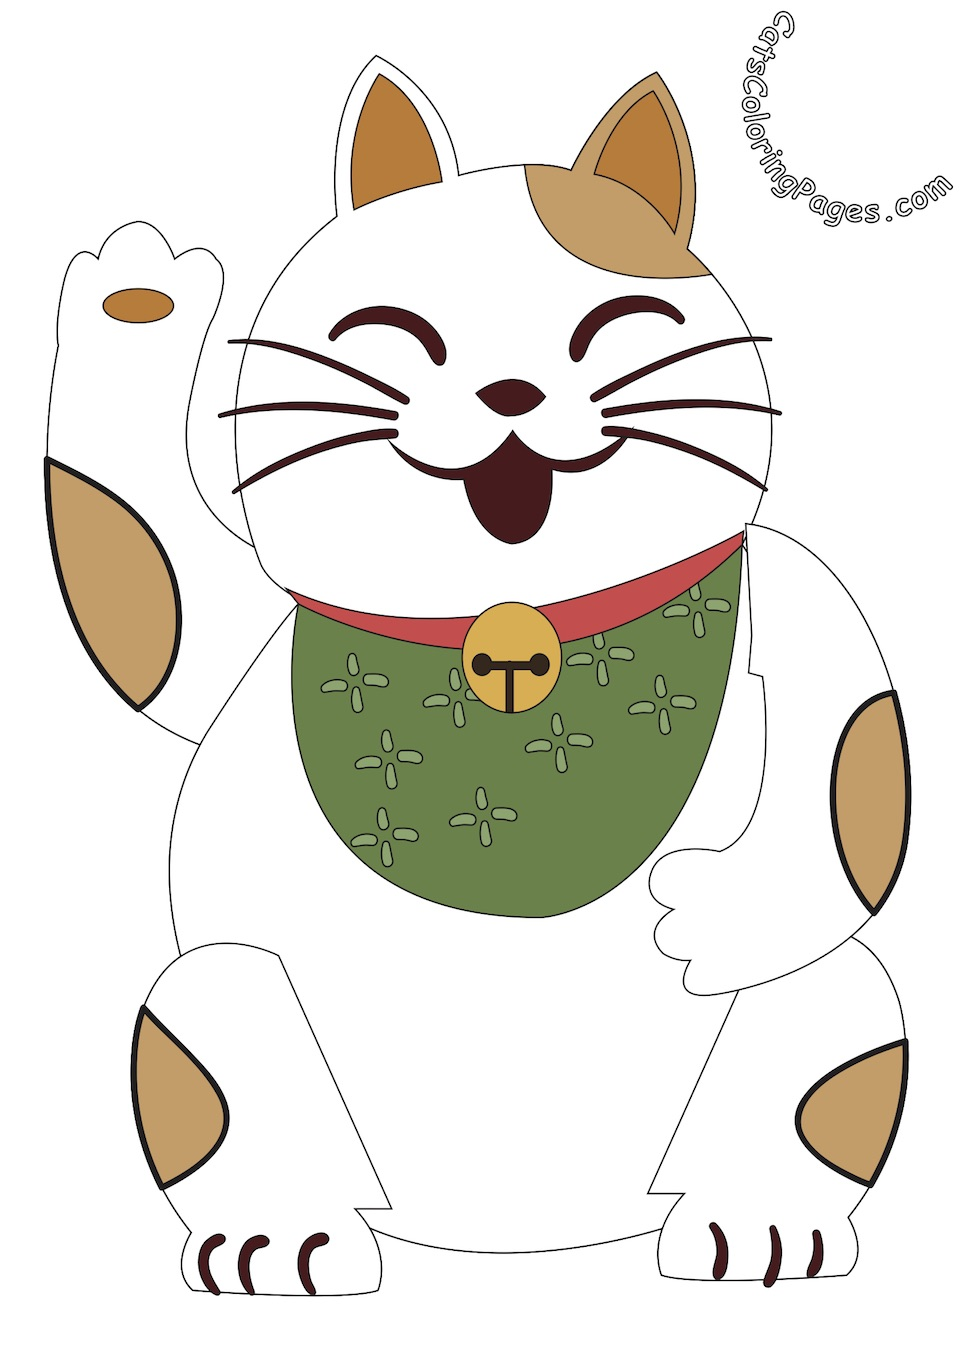 Laughing Japanese Cat Colored Coloring Page